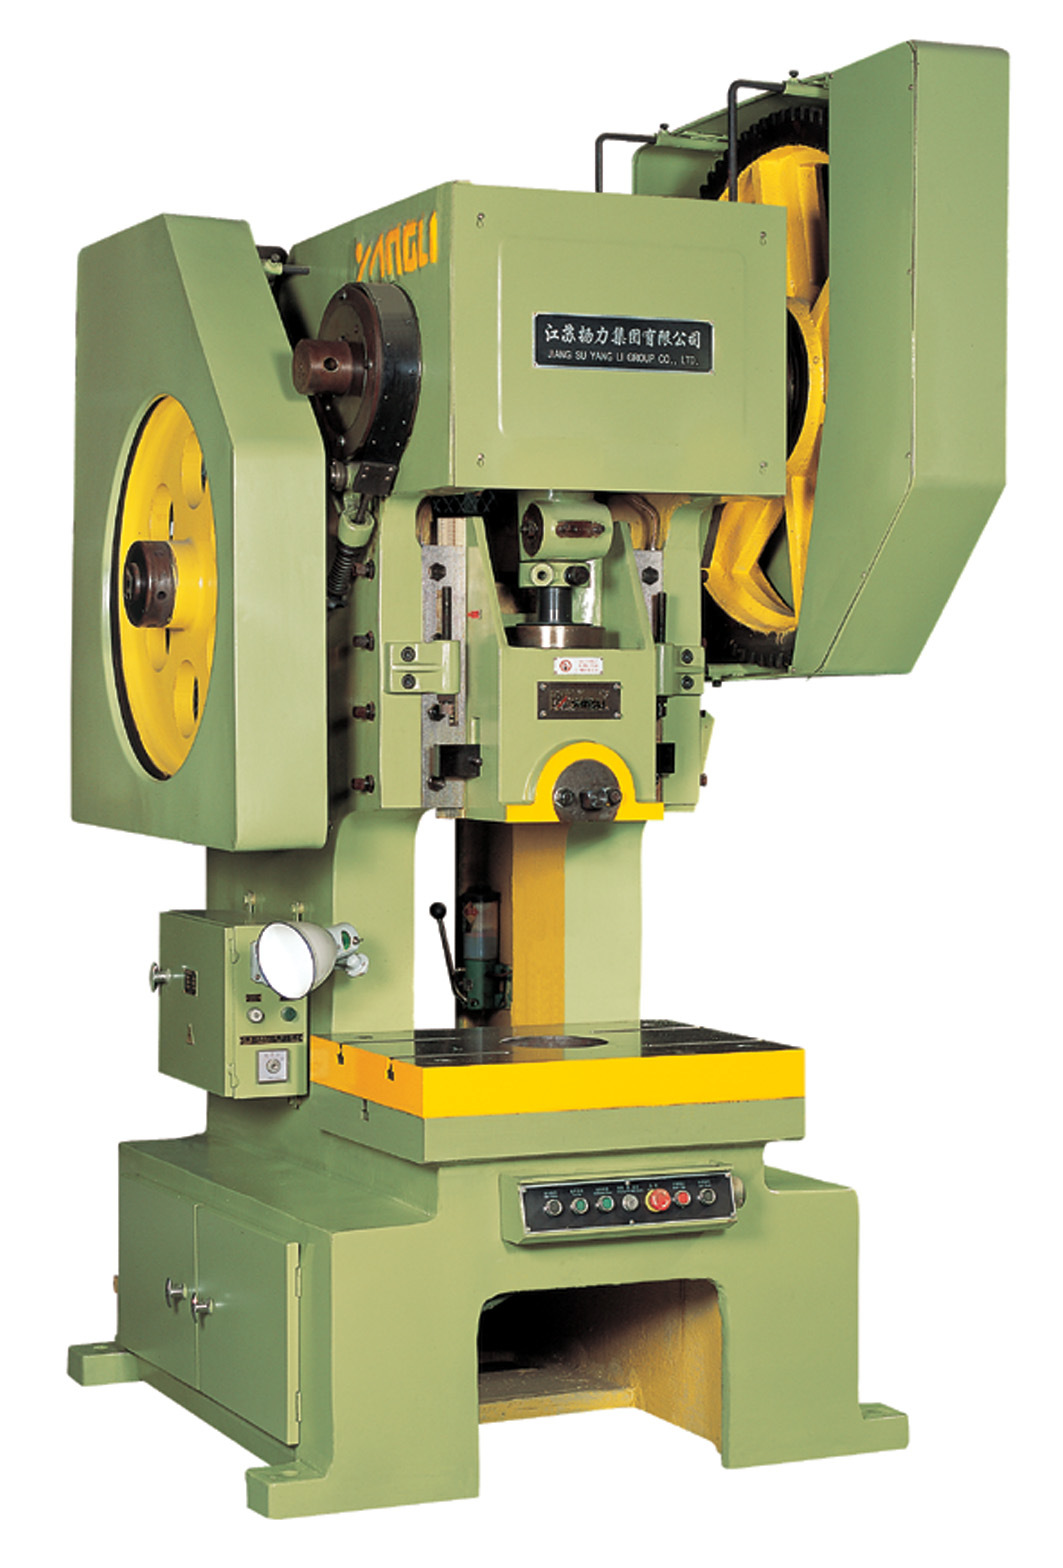 Je21 Series Economic Open Back Press Machine with Fixed Bed